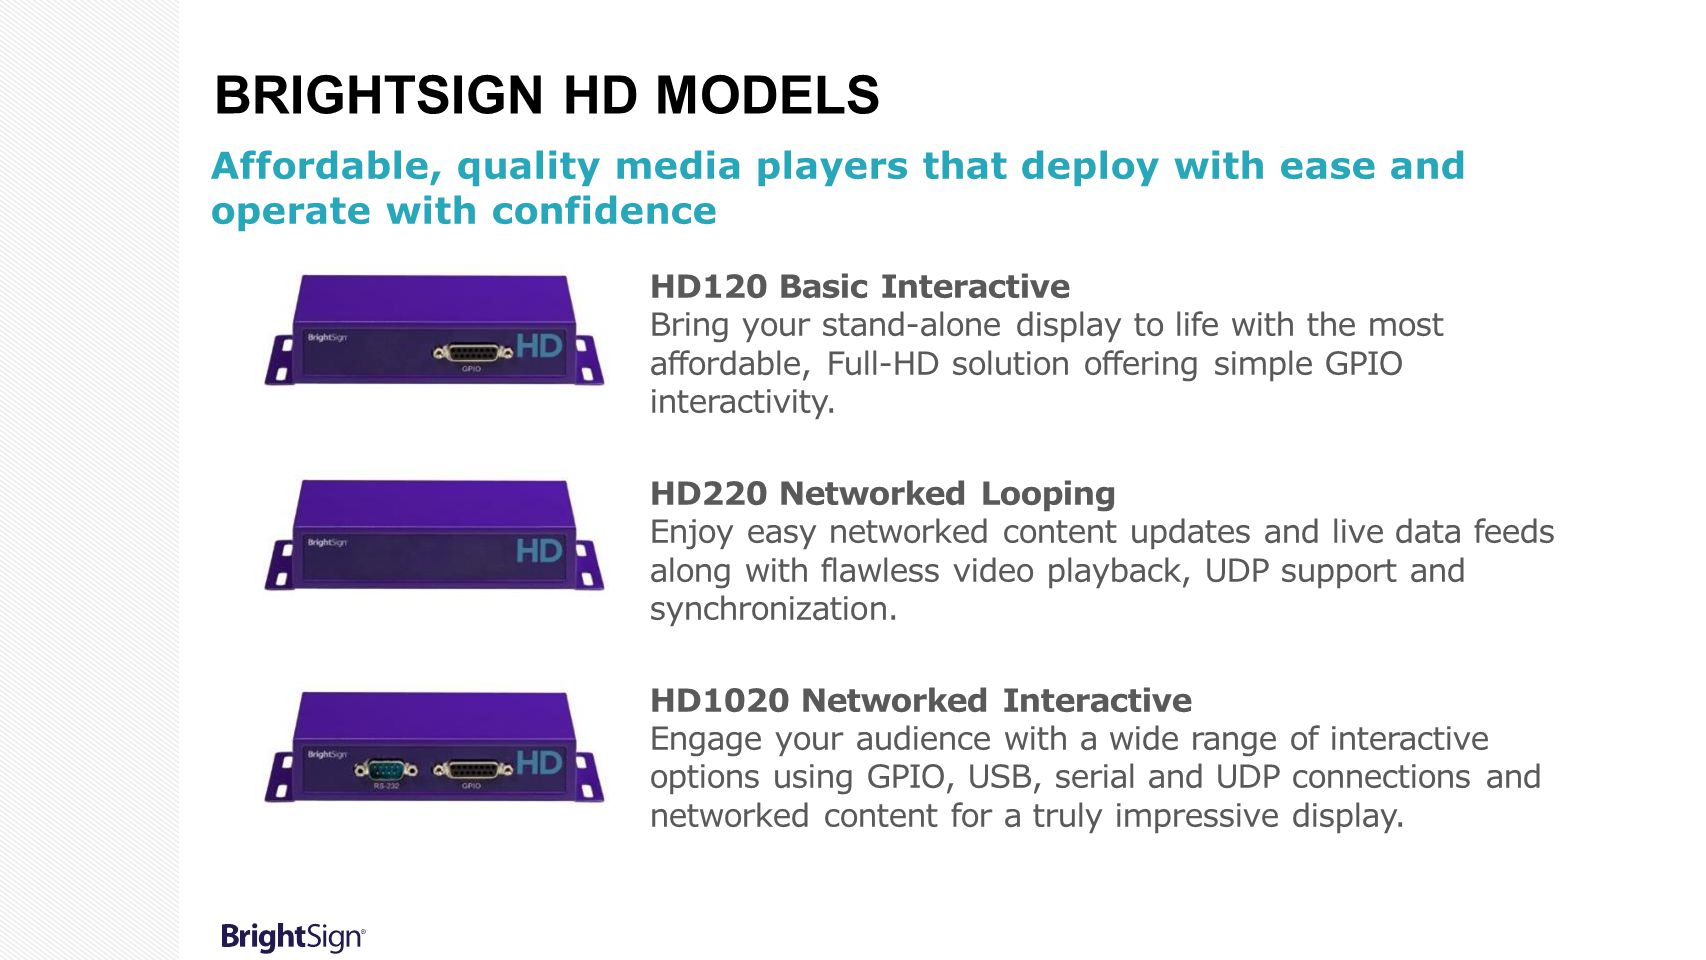 BrightSign HD models Affordable, quality media players that deploy with ease and operate with confidence.